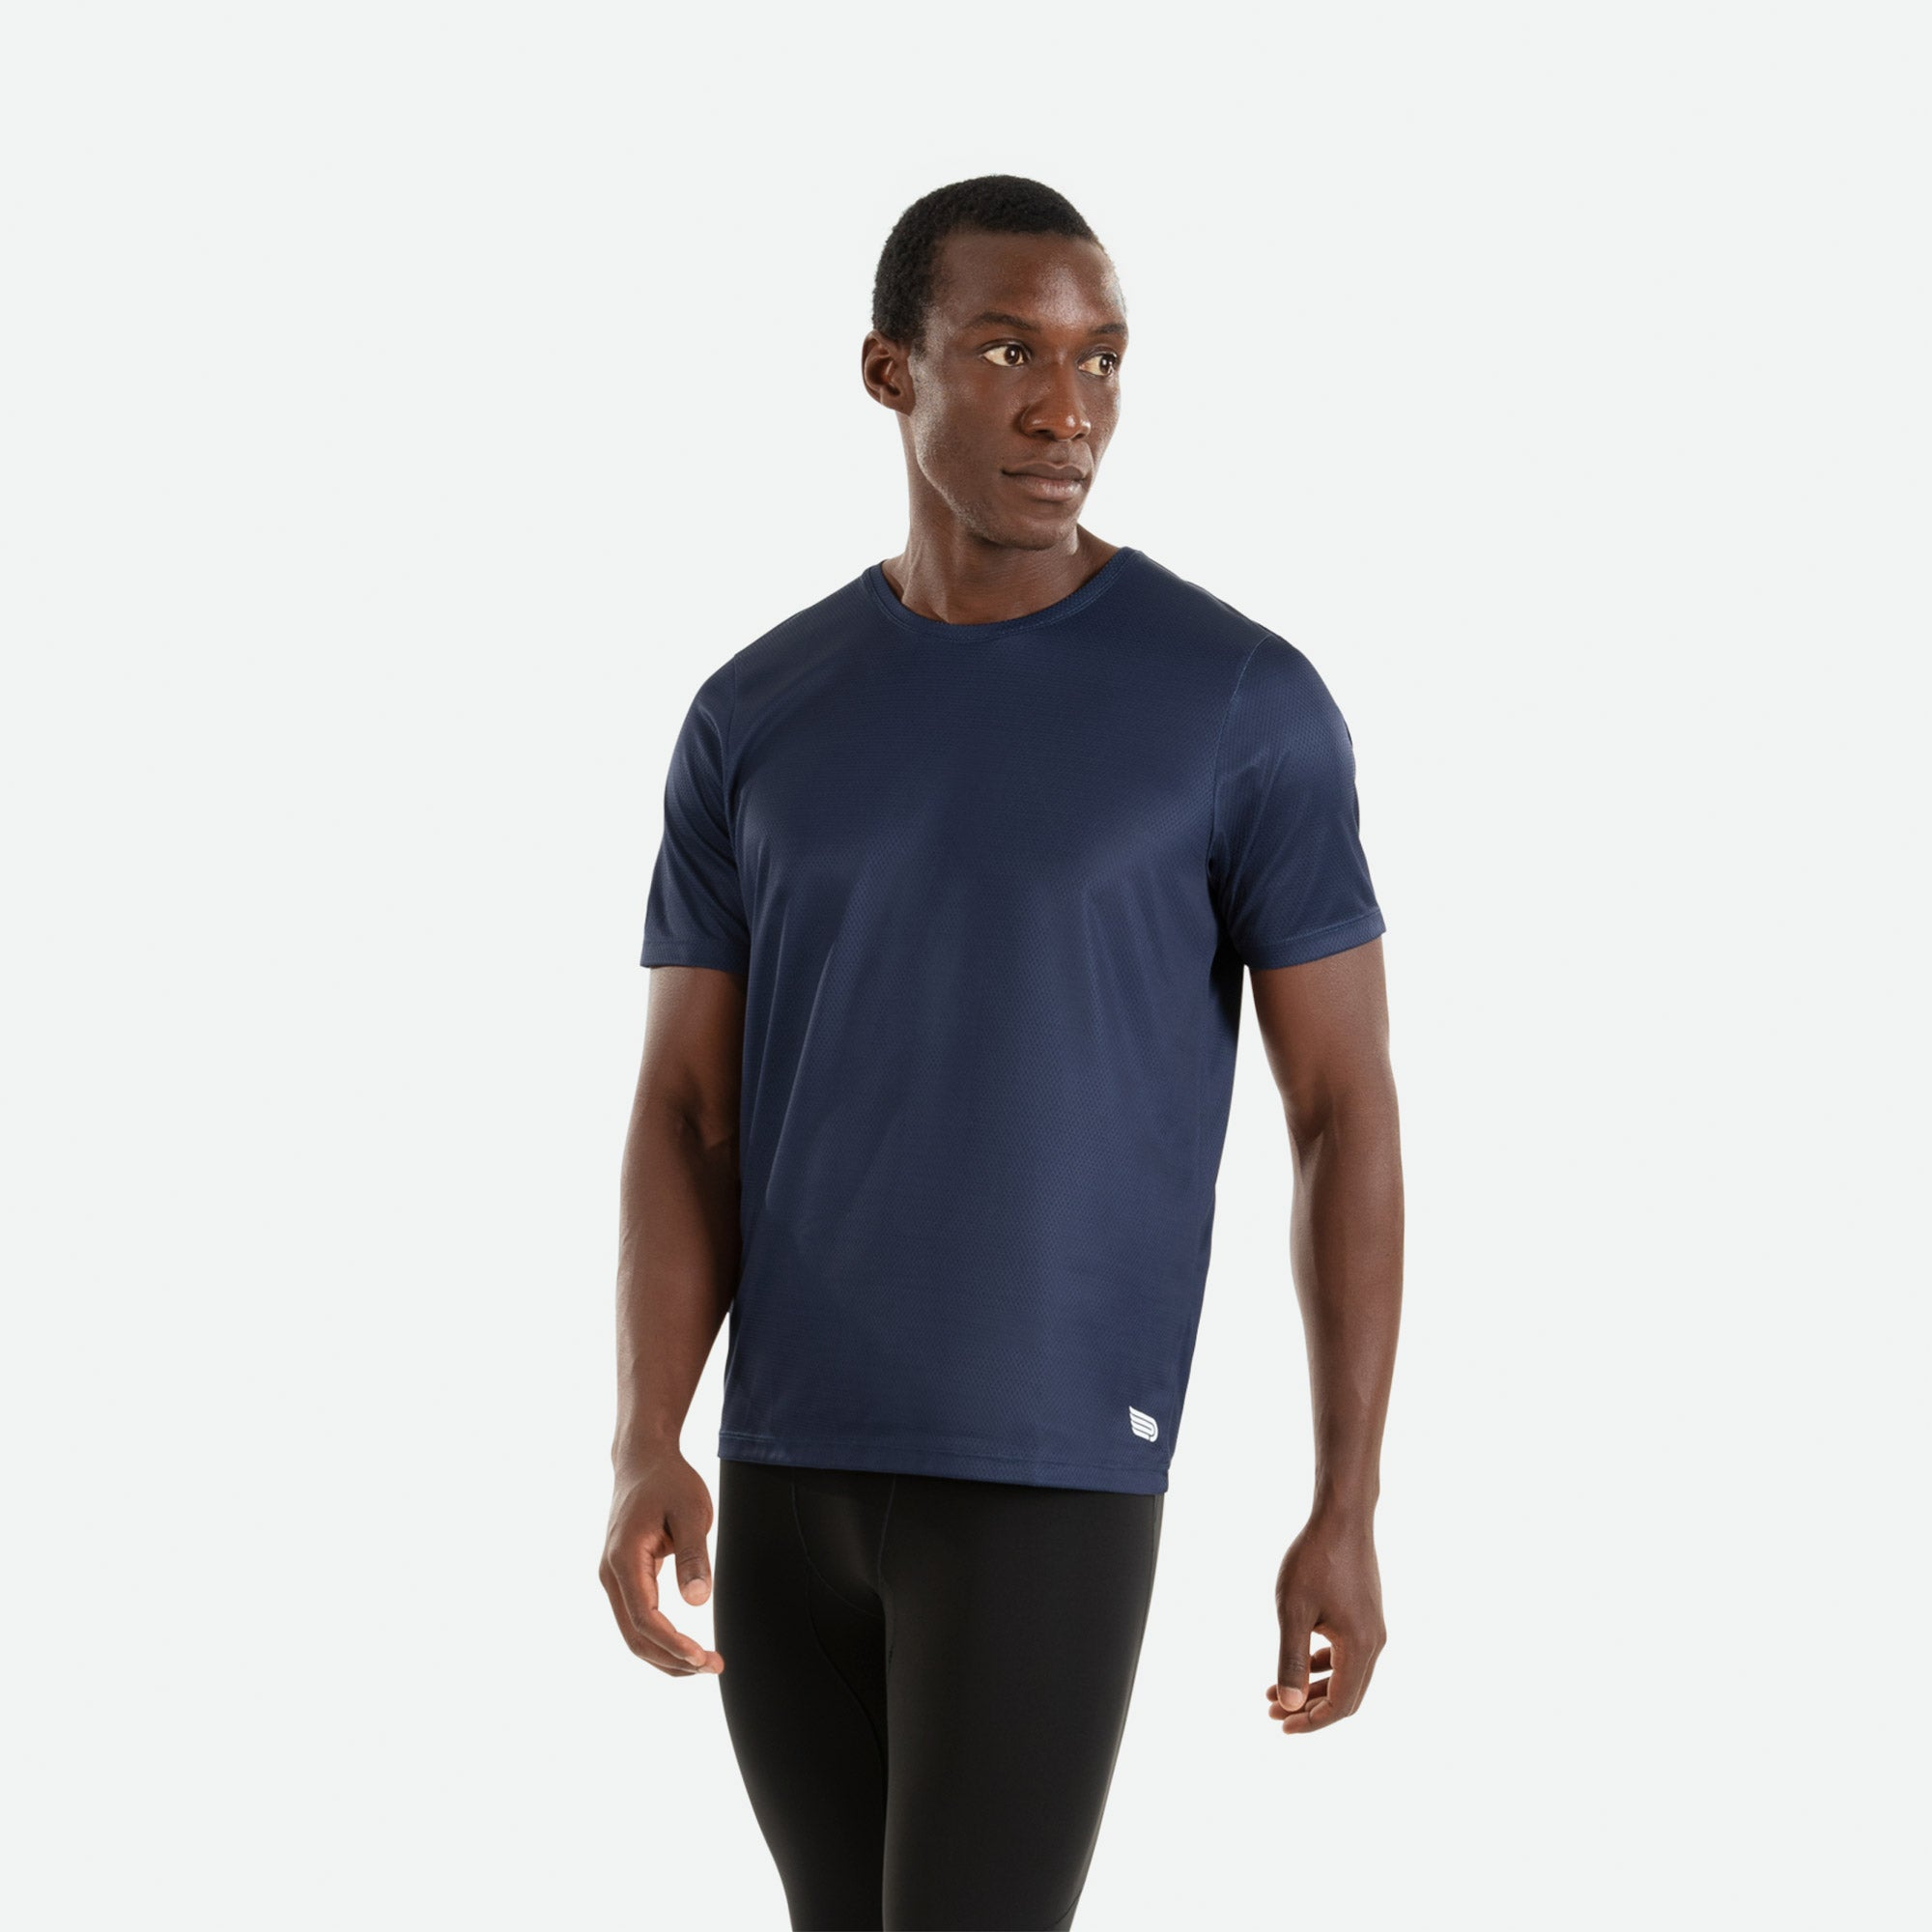 Our Pressio men's navy Hāpai short sleeve t-shirt features EcoTECH MF fabric which has dual filament recycled polyester yarns from Unifi for superior moisture control to keep you dry.